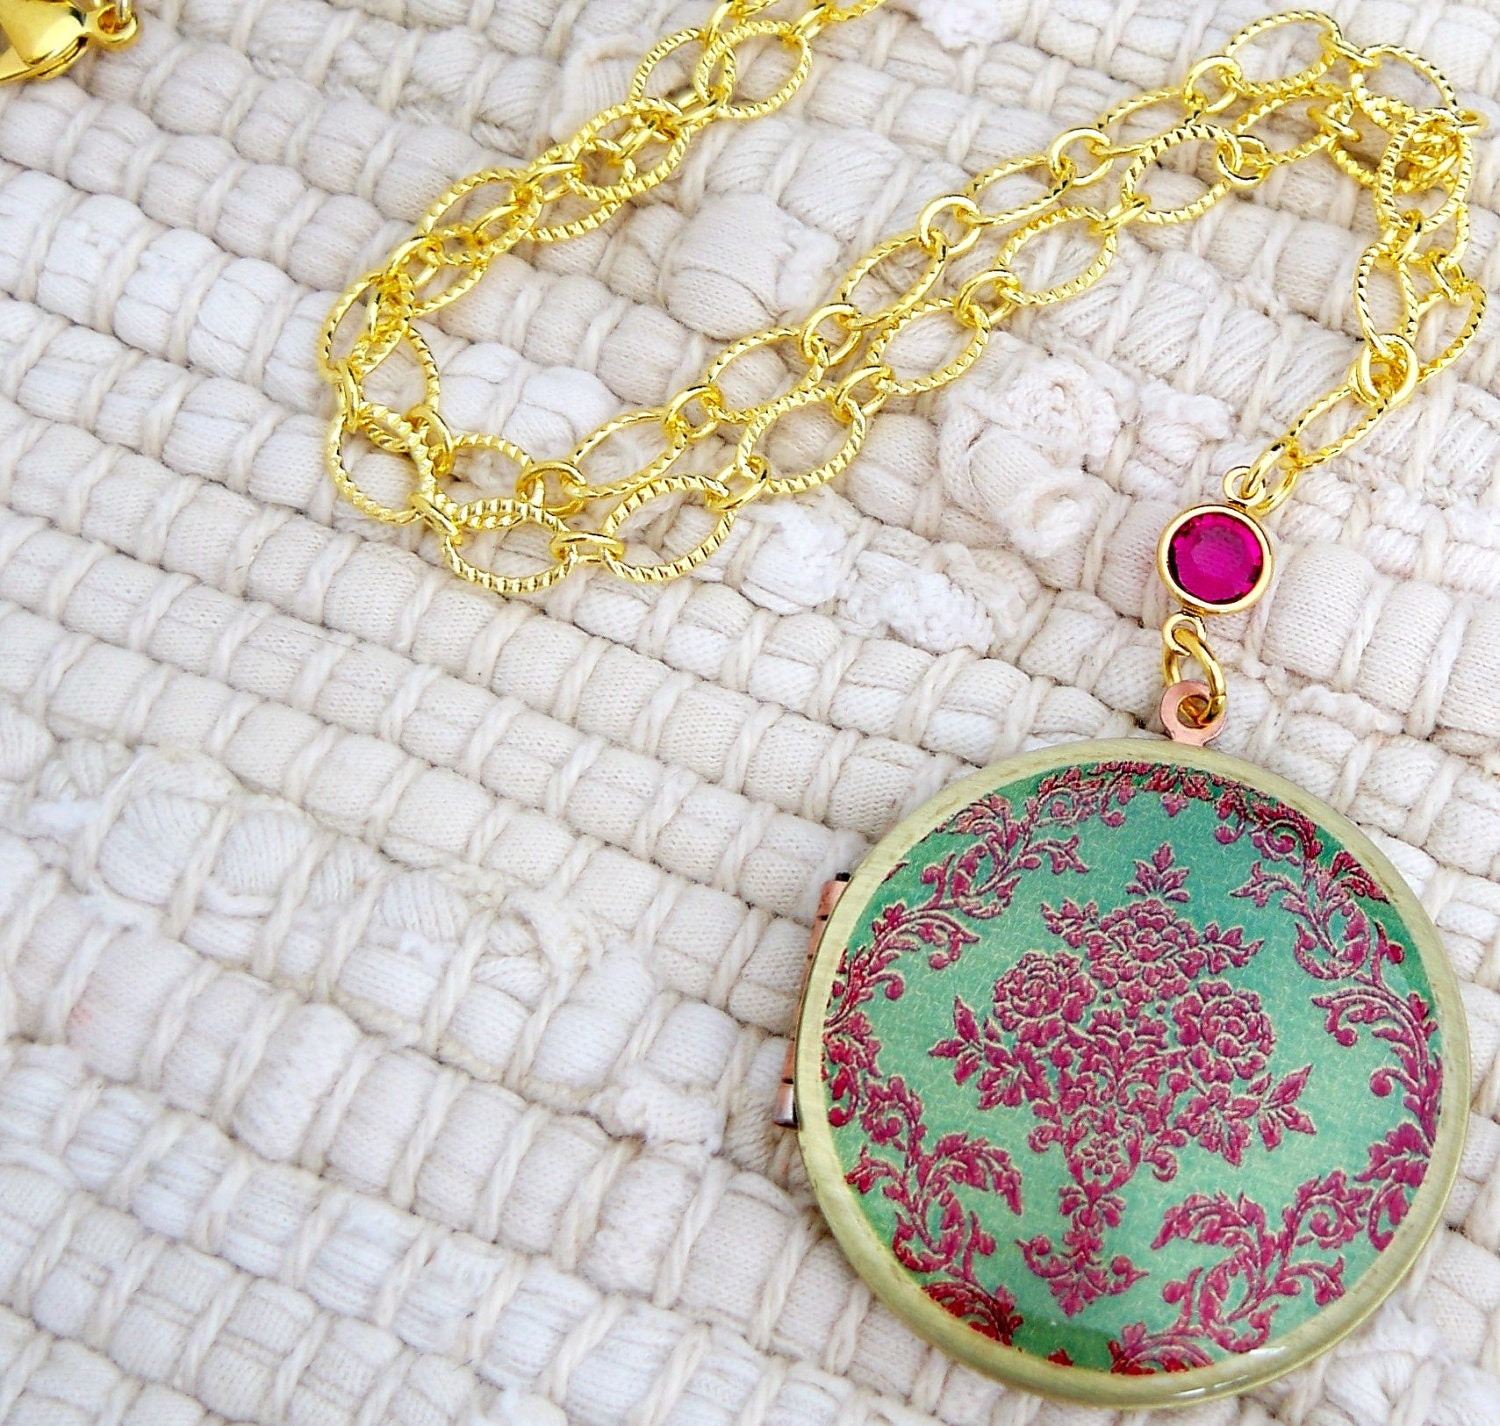 SALE The Vintage Floral Damask Brass Gold Art Locket Necklace